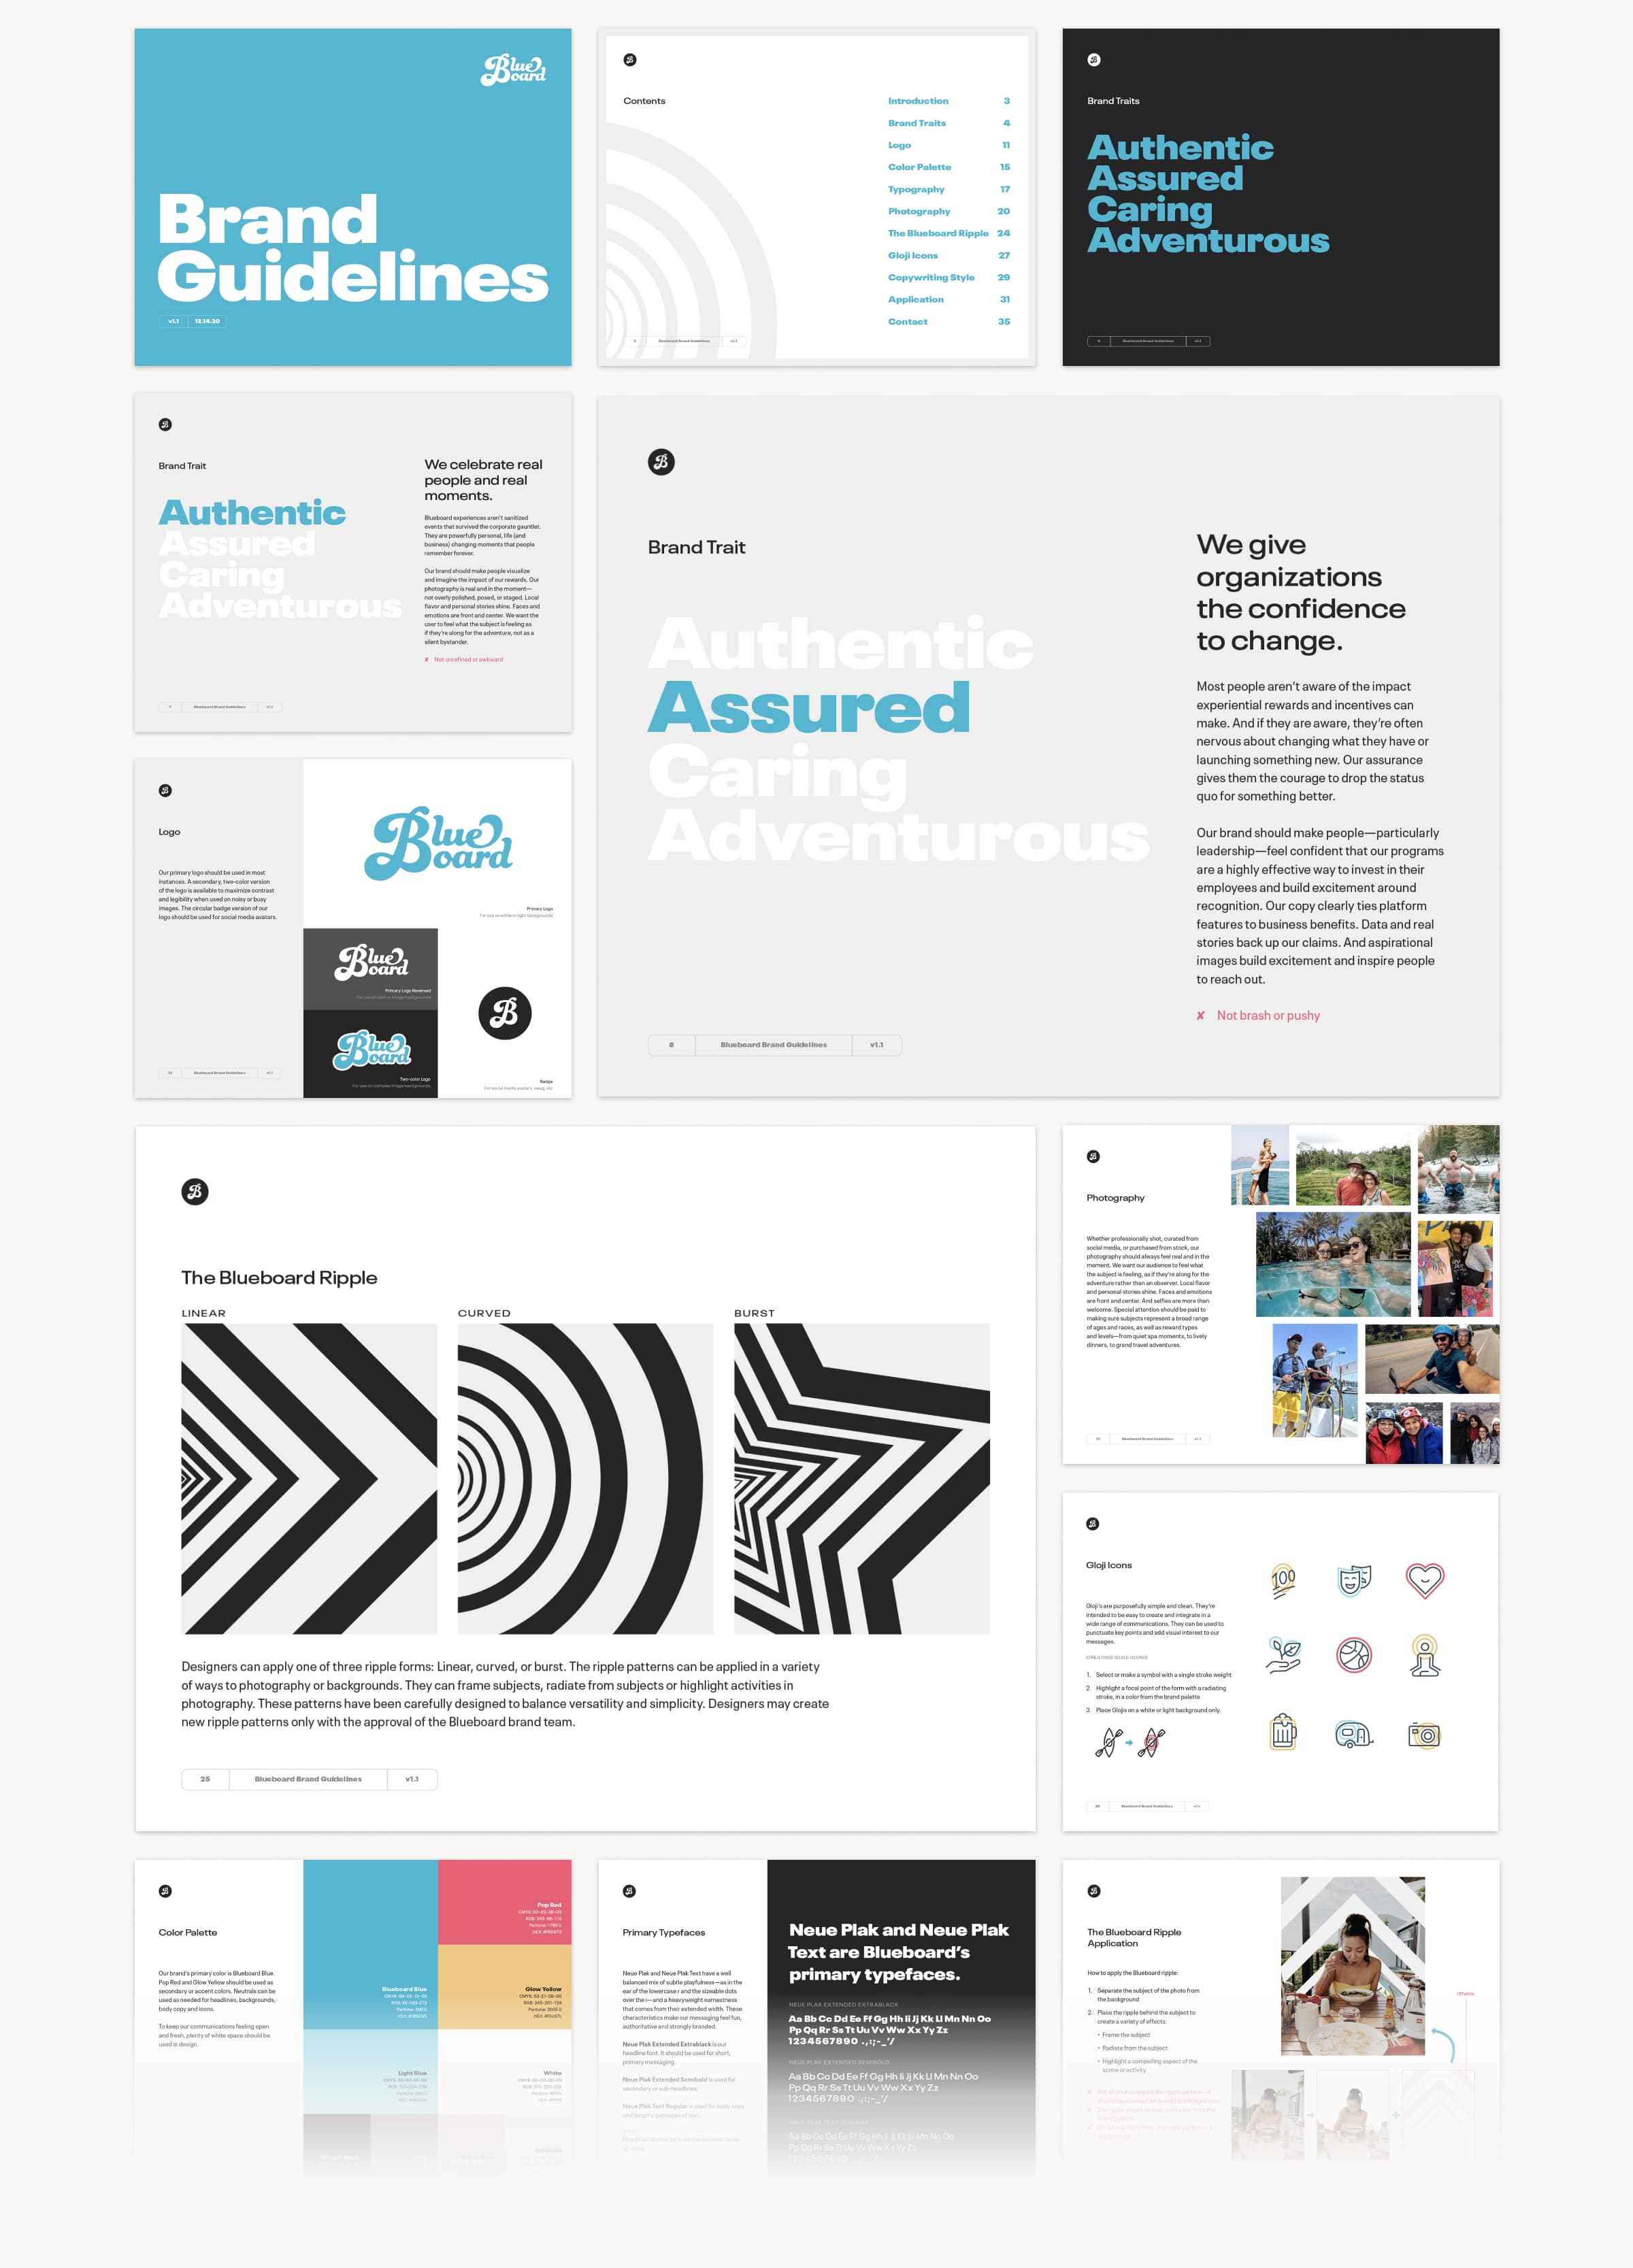 A series of 12 thumbnail images showing key pages from Blueboard's brand style guide.